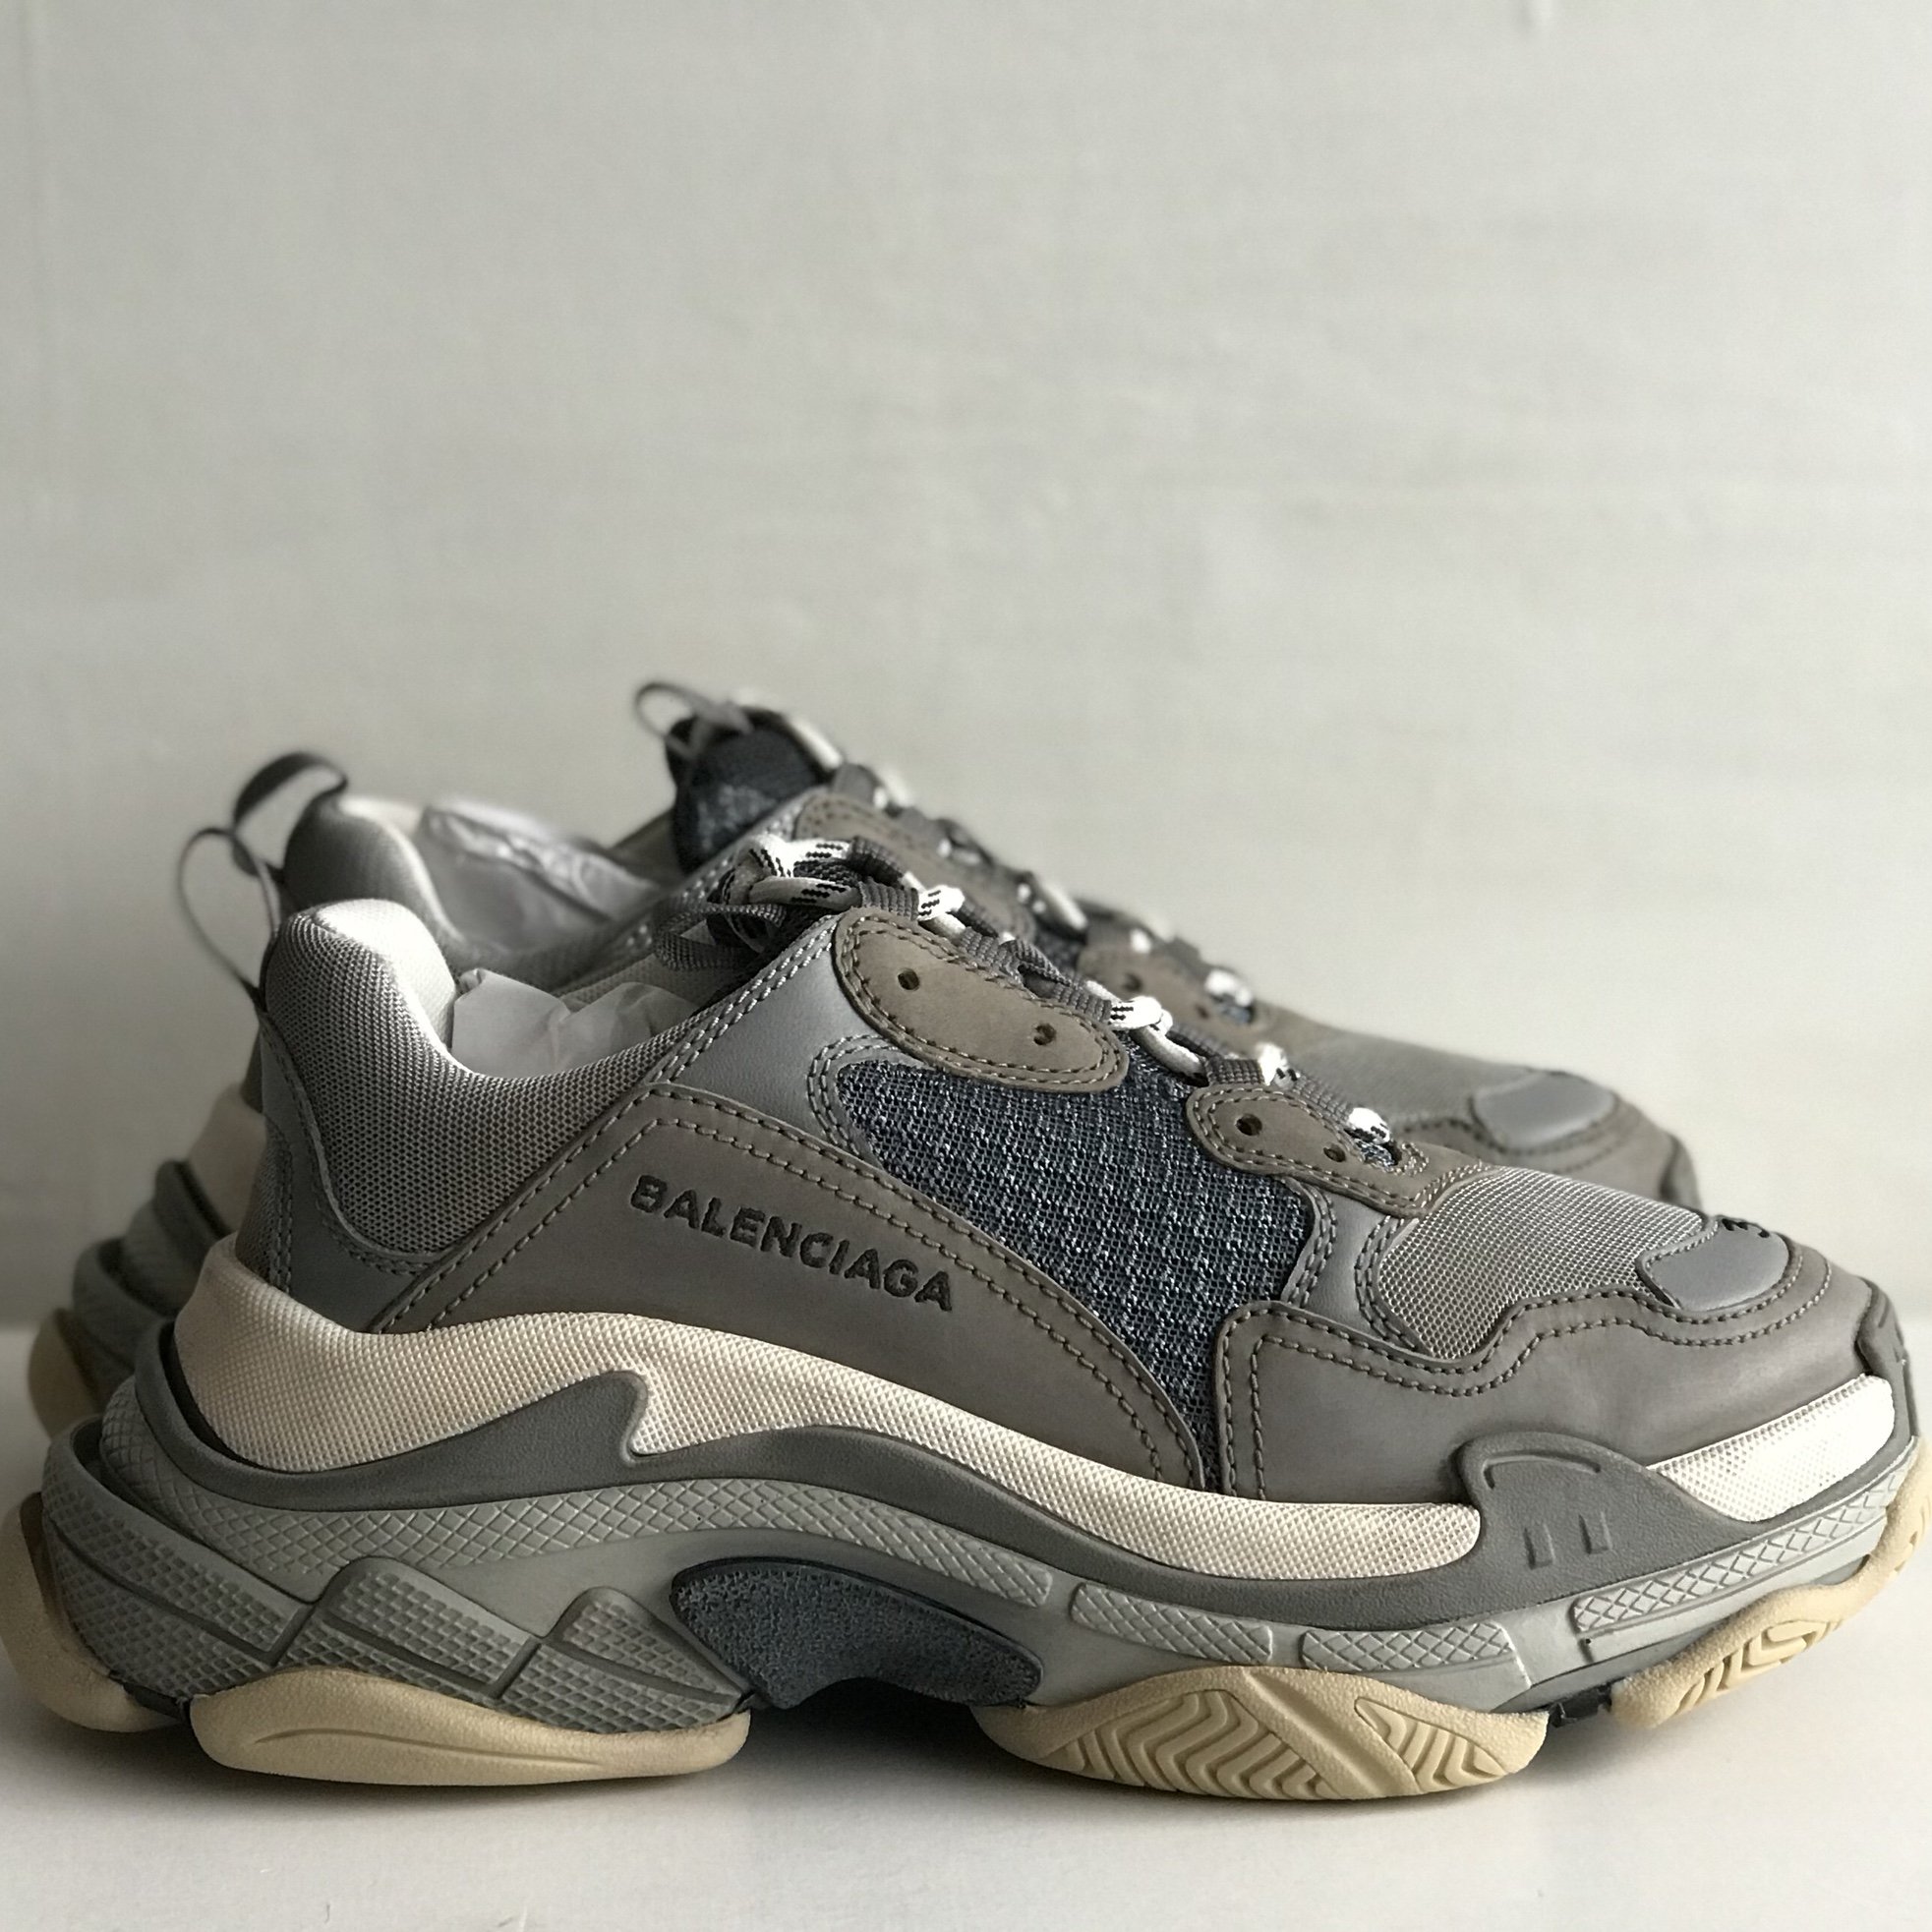 Balenciaga Triple S Niedrig Cut Sneakers 45 Trainers Made in